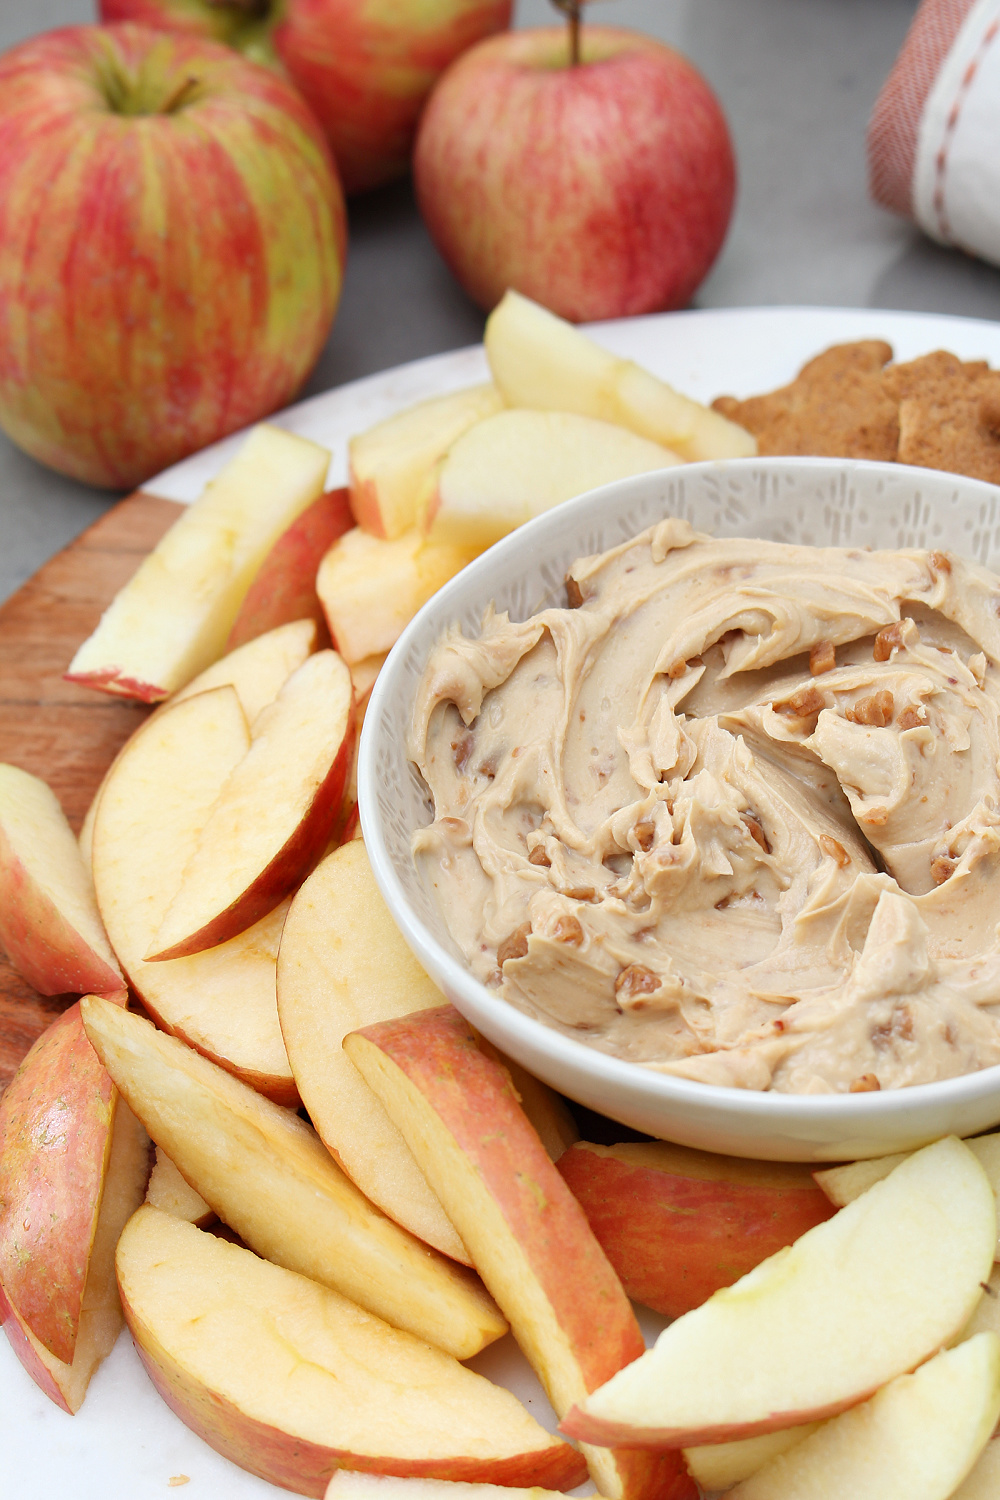 Cream cheese apple dip with sliced apples.